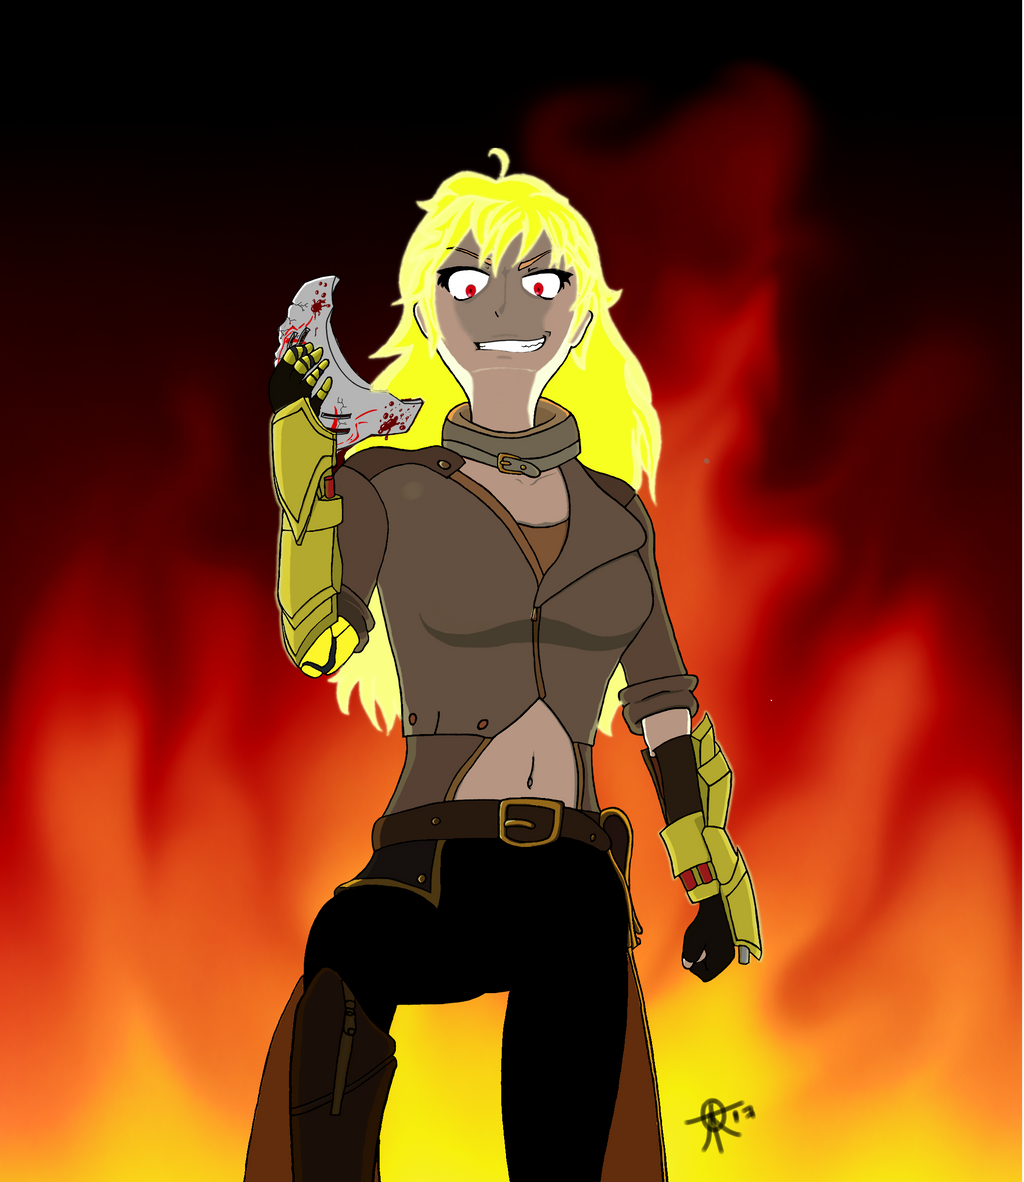 fiery_vengeance_by_nolmet-db0uusb.png